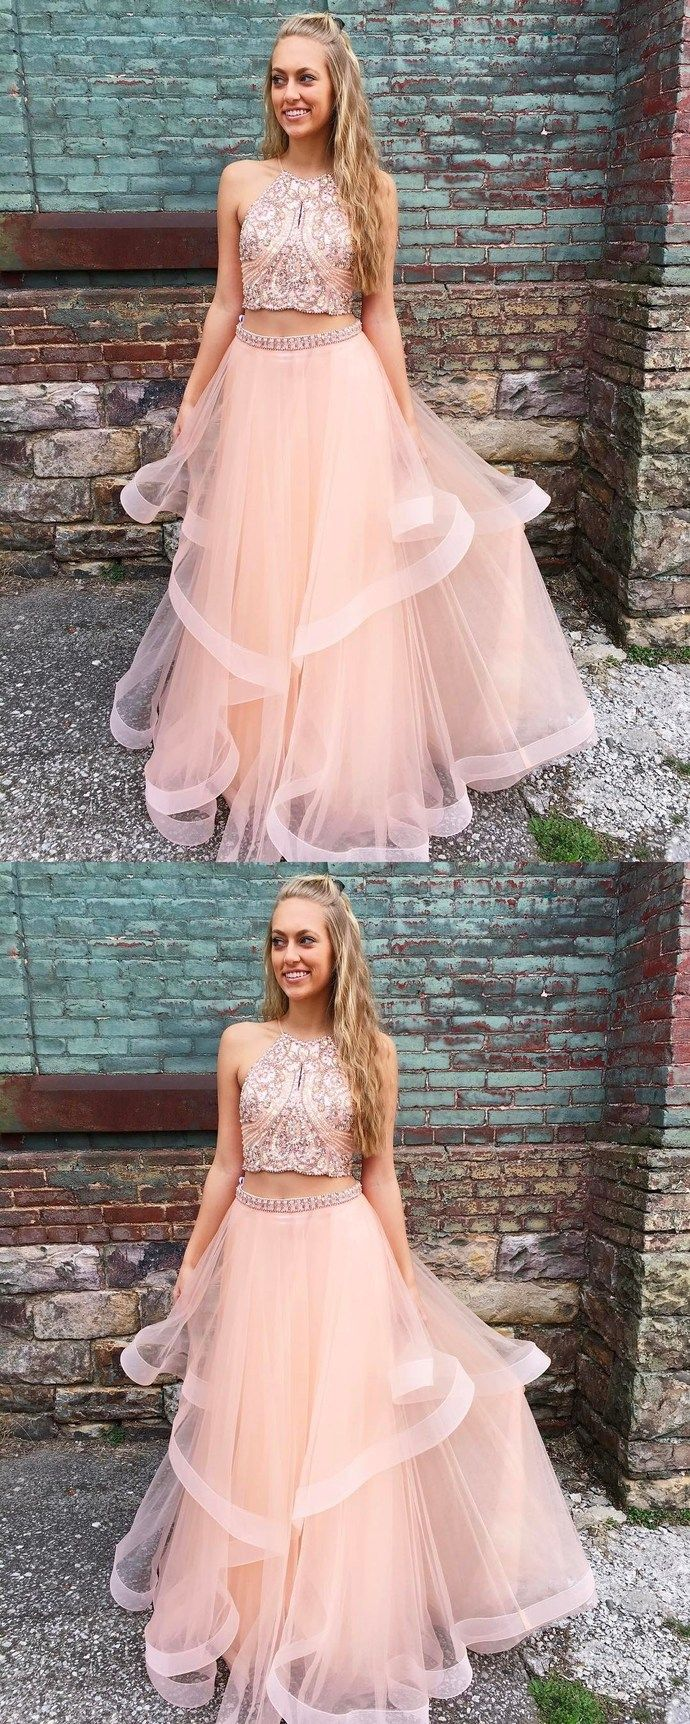 667c4f9fc8f Gorgeous Two Piece Pink Long Prom Dress, two piece white long ball ...